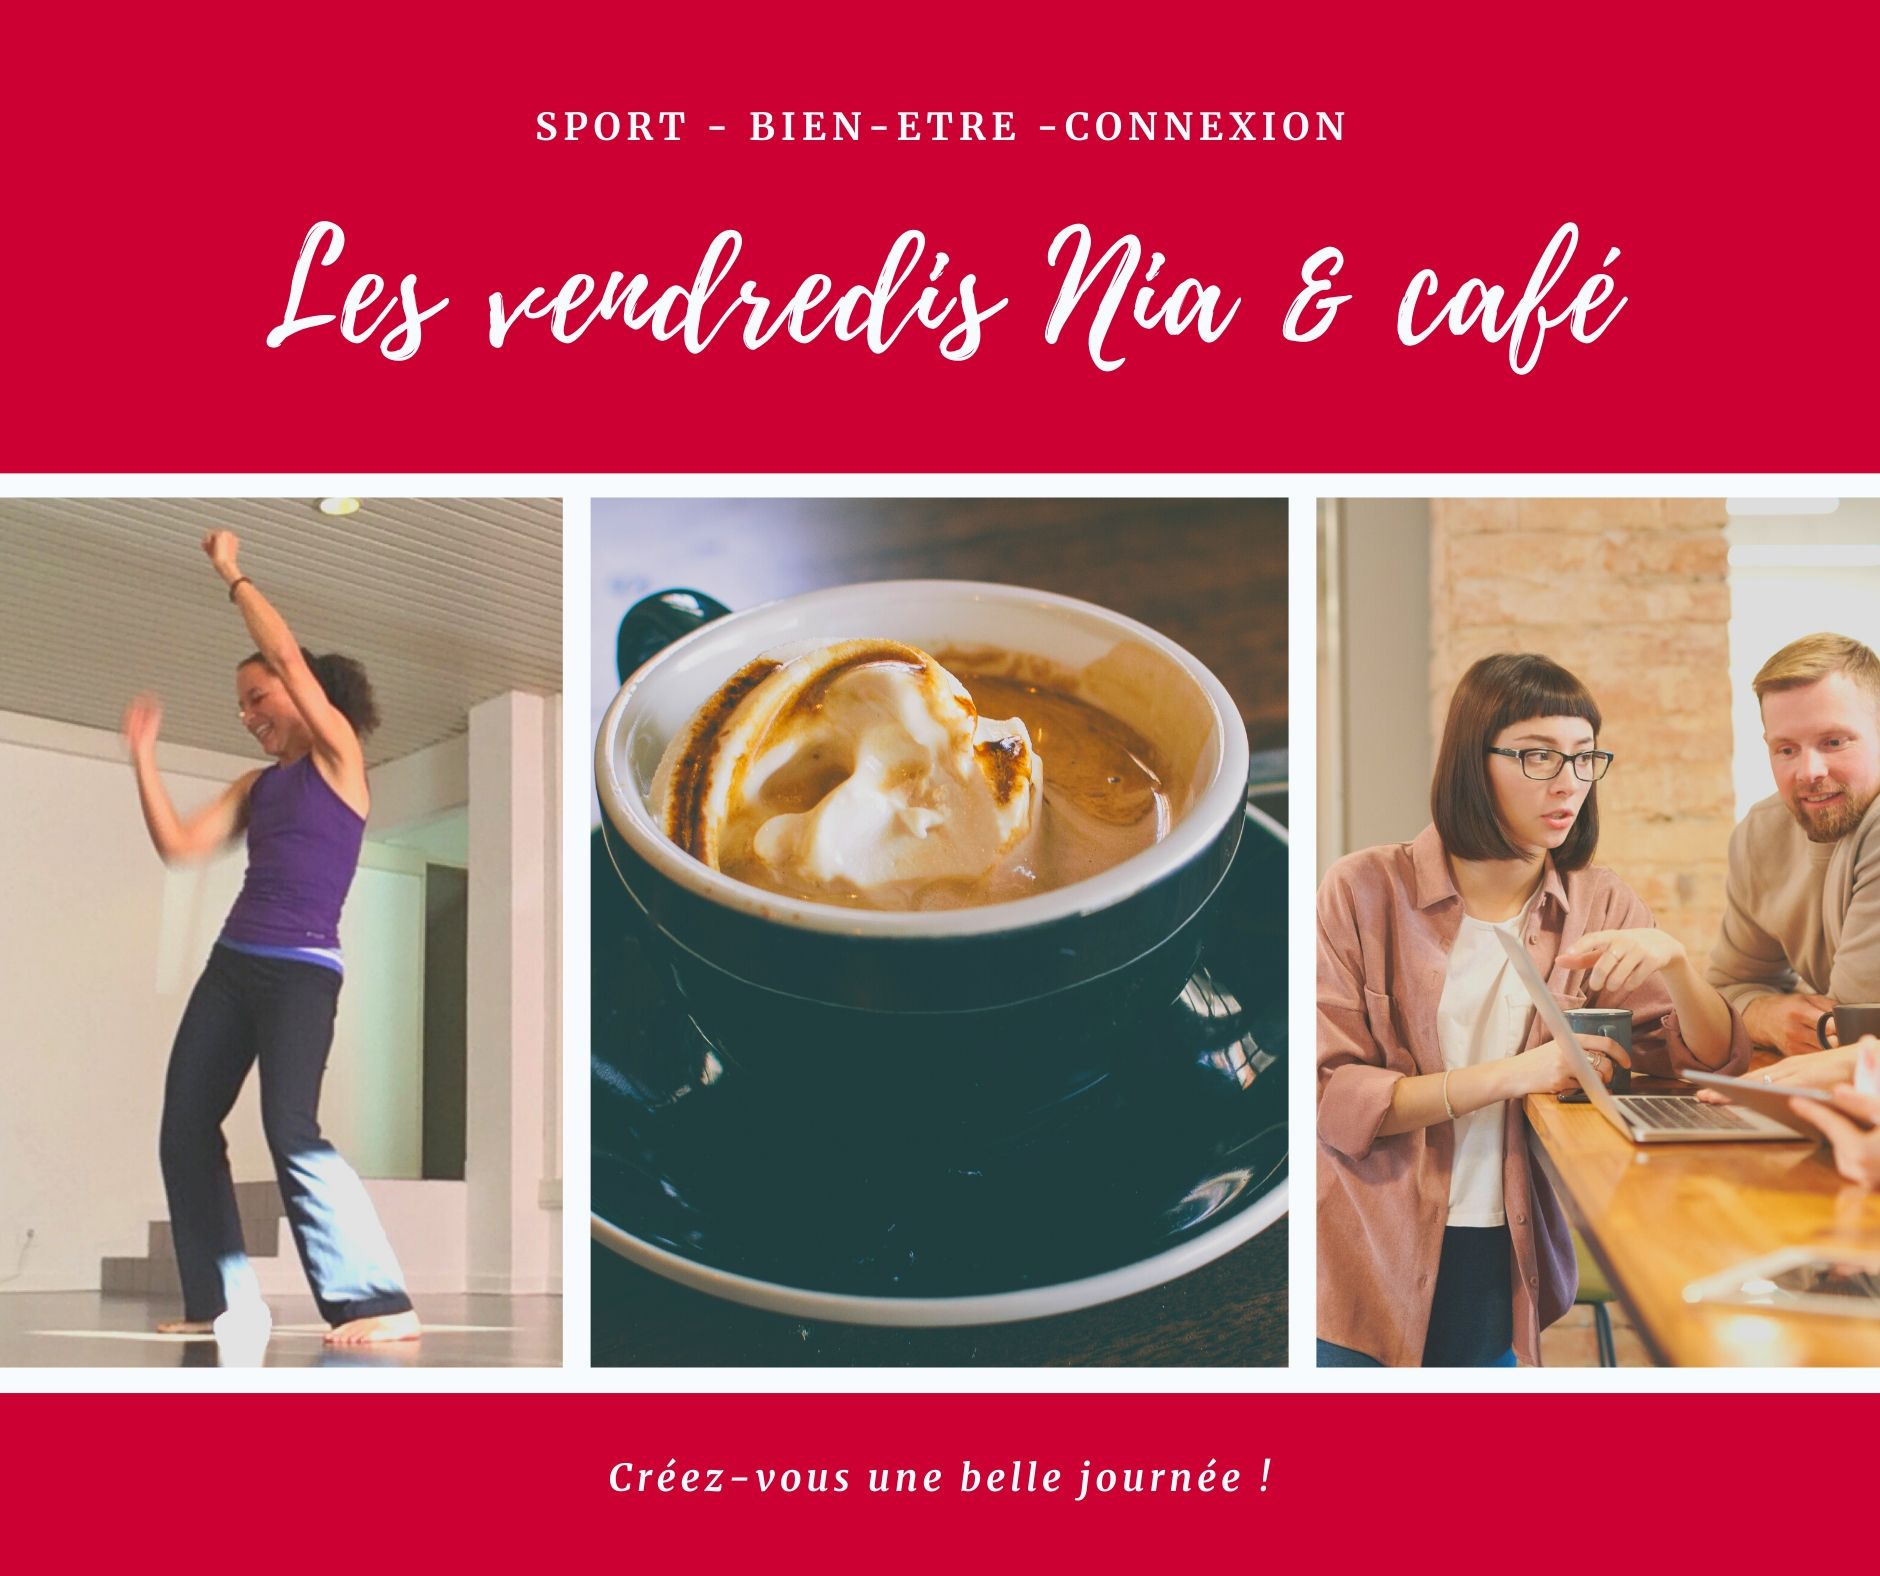 Les vendredis Nia & café